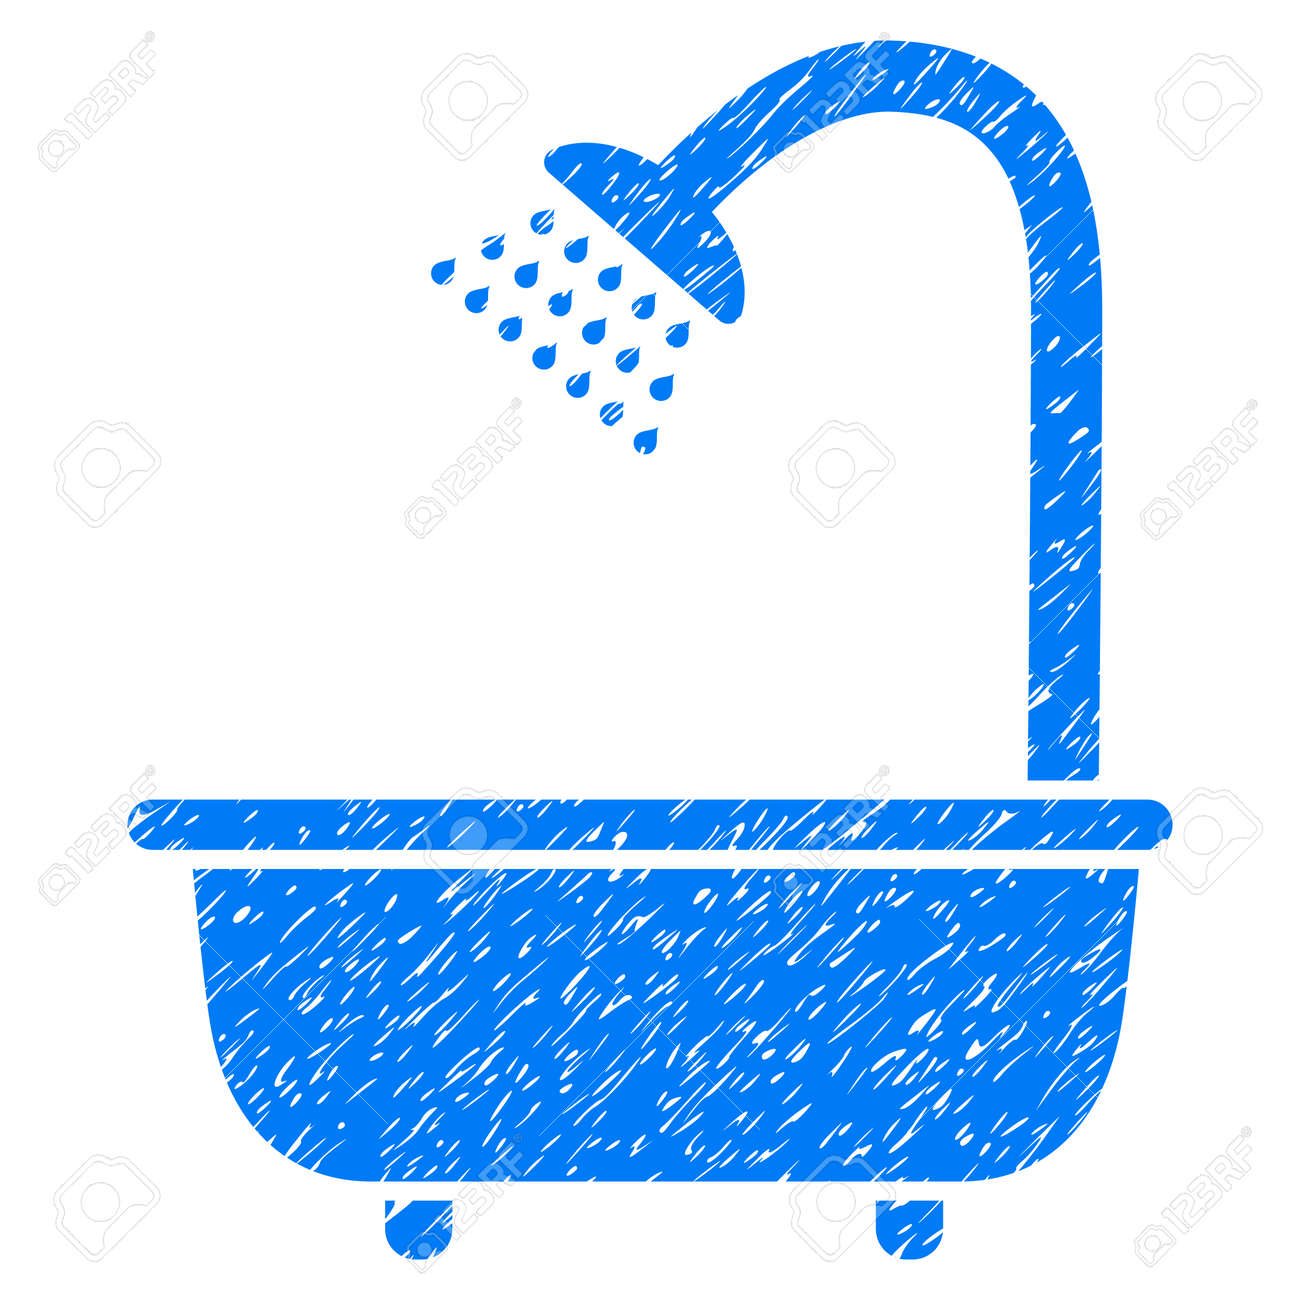 Bath Shower Grainy Textured Icon For Overlay Watermark Stamps ...